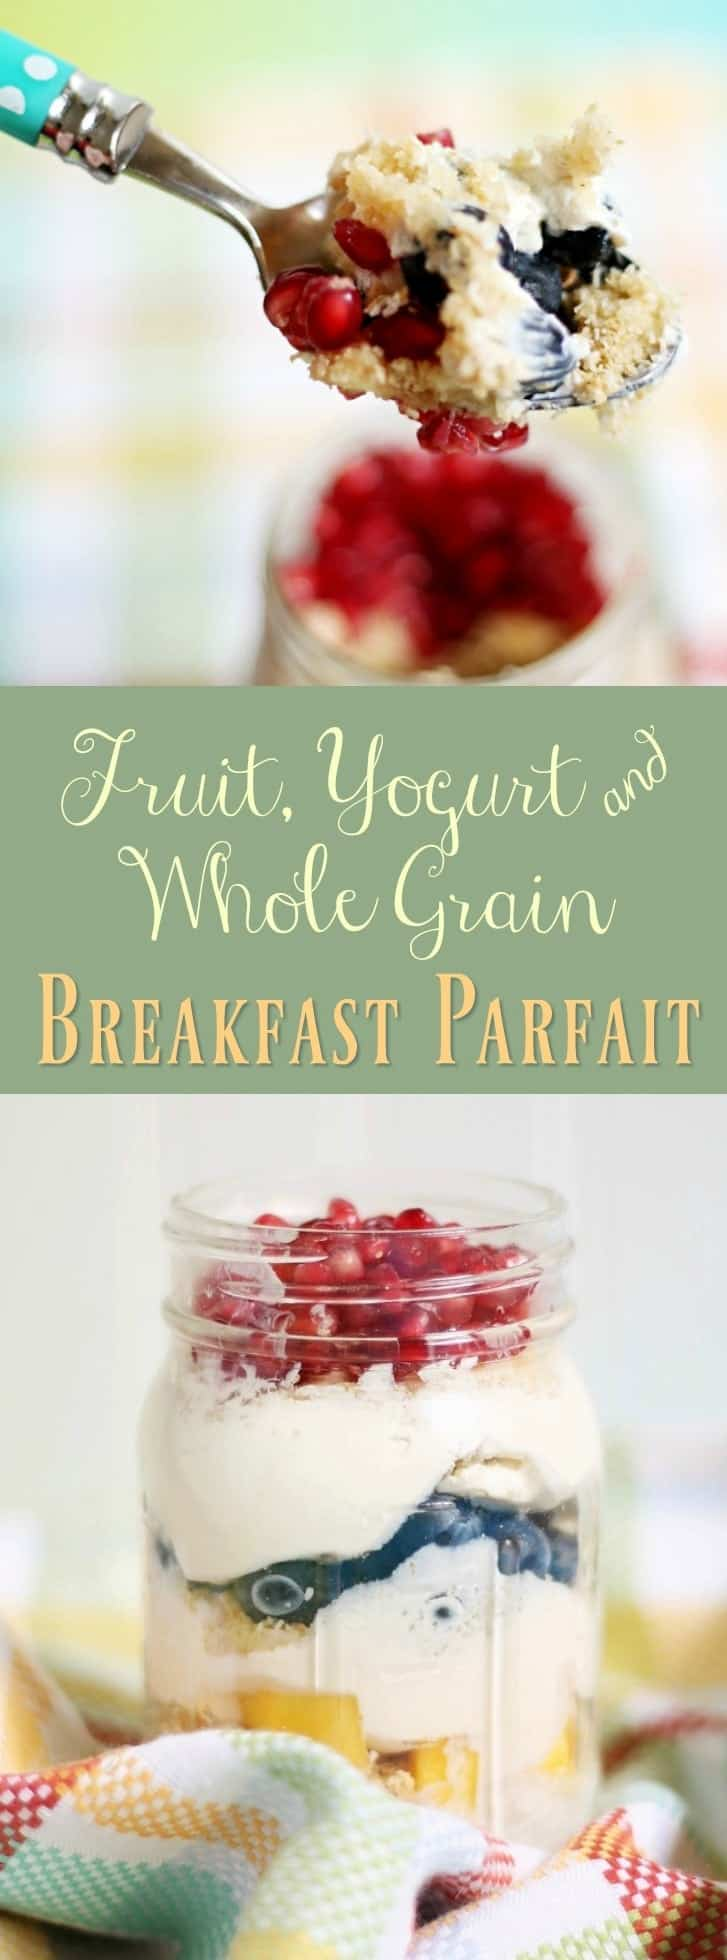 Fruit, Yogurt, & whole grain breakfast parfait recipe. #spoonfulsofgoodness (AD) -- Get a Post® cereal coupon here: ooh.li/1369266